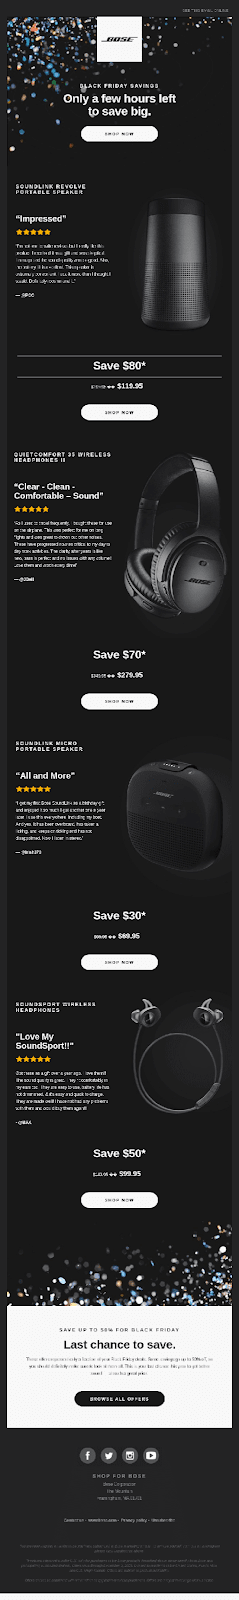 Bose email example